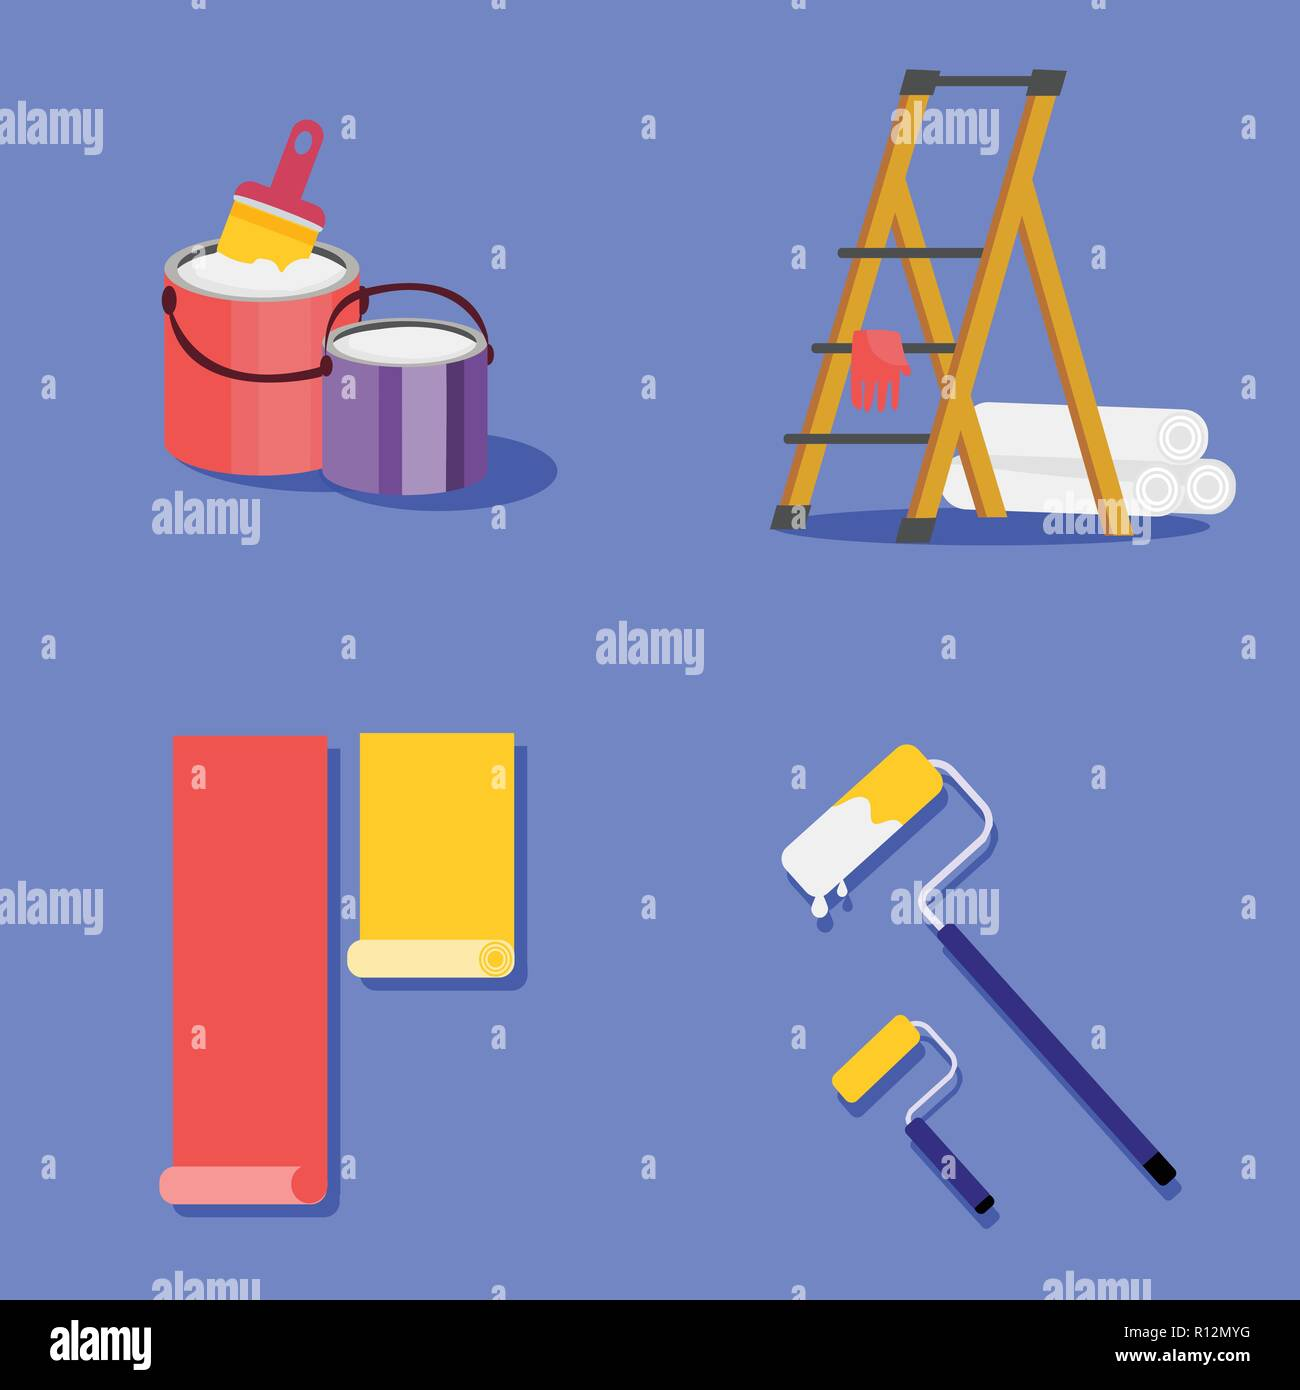 Stock vector illustration set painting and wall upkeep tools. Isolated illustrations of two paint buckets with paintbrush, platform ladder, gloves and - Stock Vector